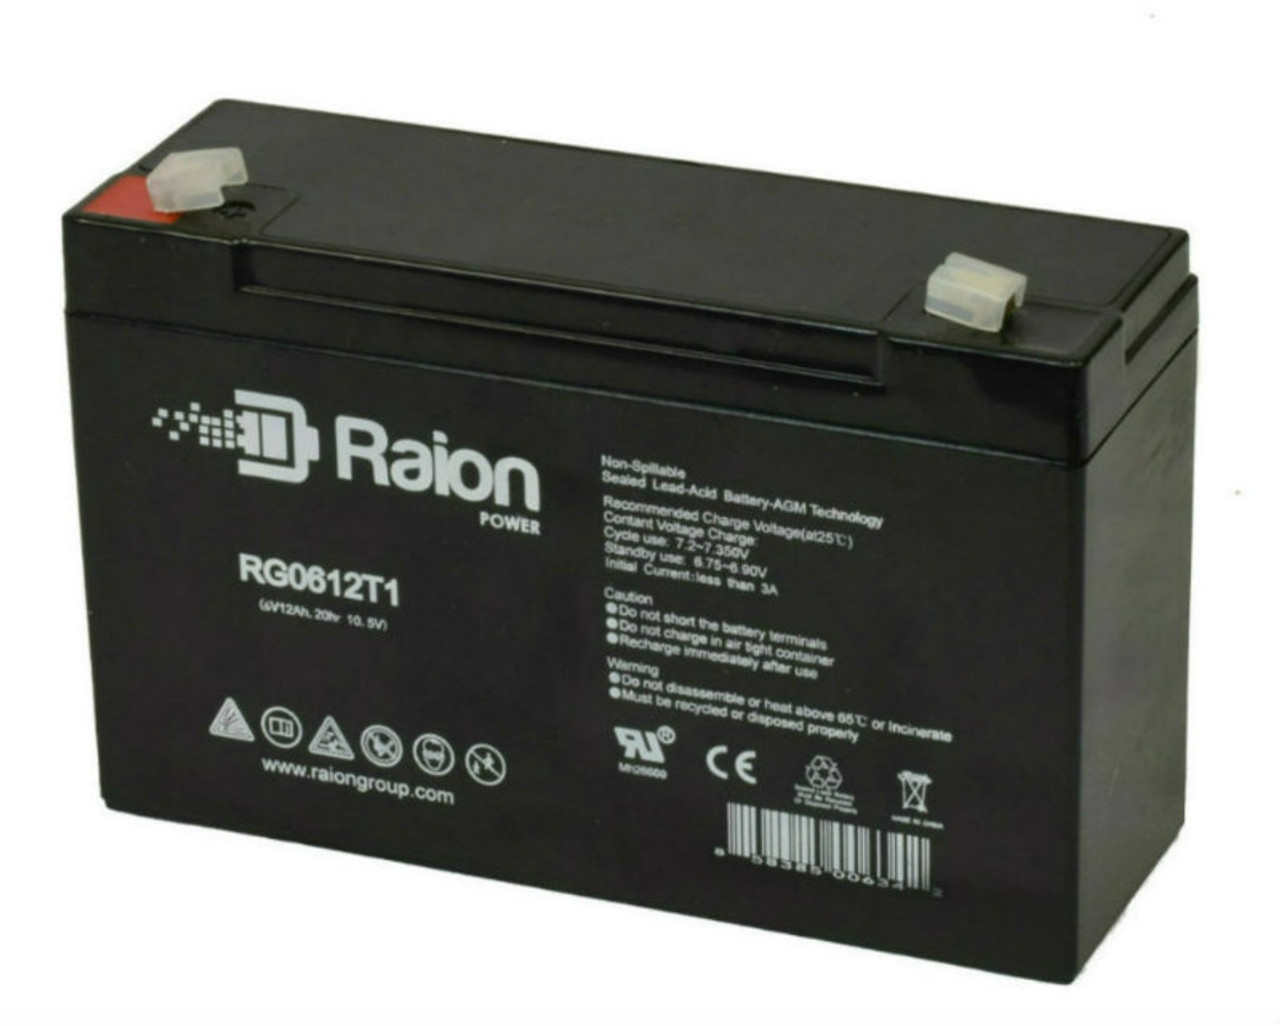 Raion Power RG06120T1 Replacement Battery Pack for Dynaray S18176 emergency light